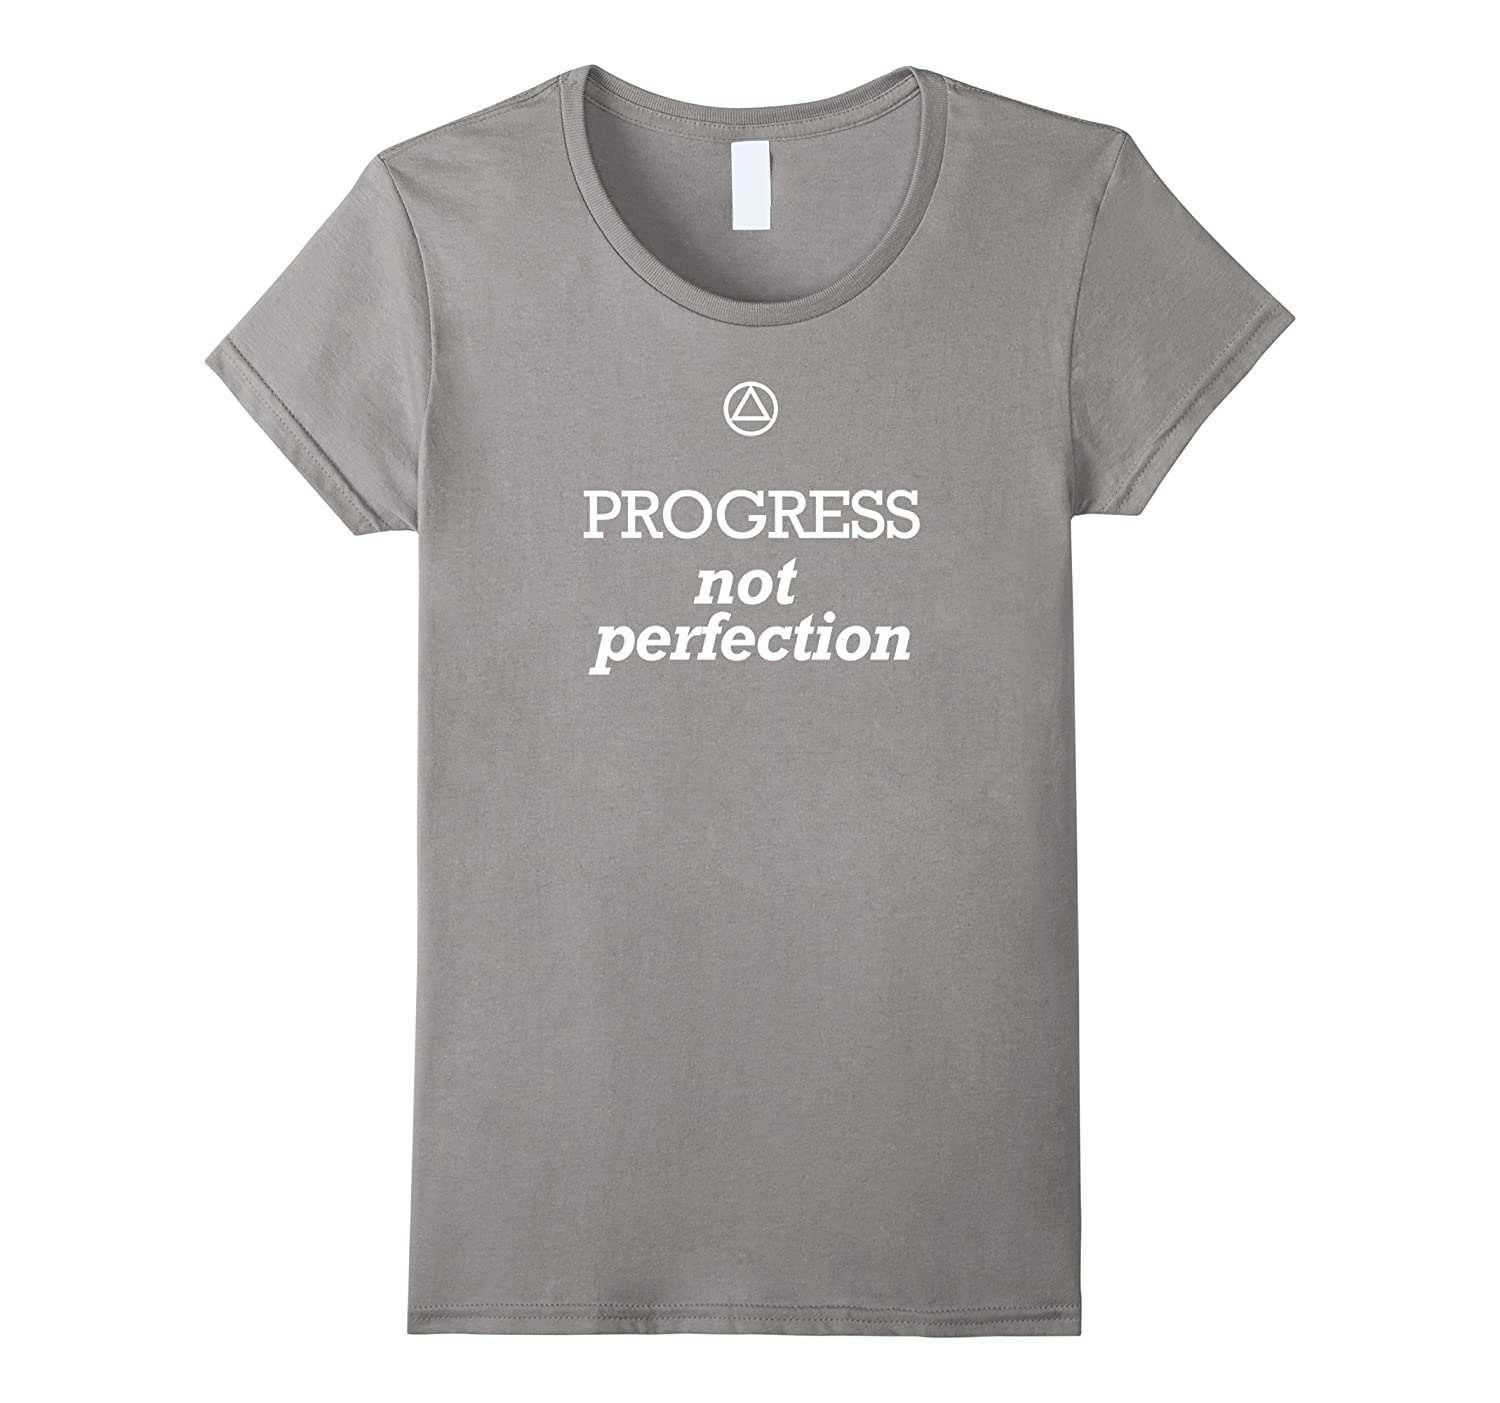 'Progress, Not Perfection' – Funny AA Recovery T-Shirt